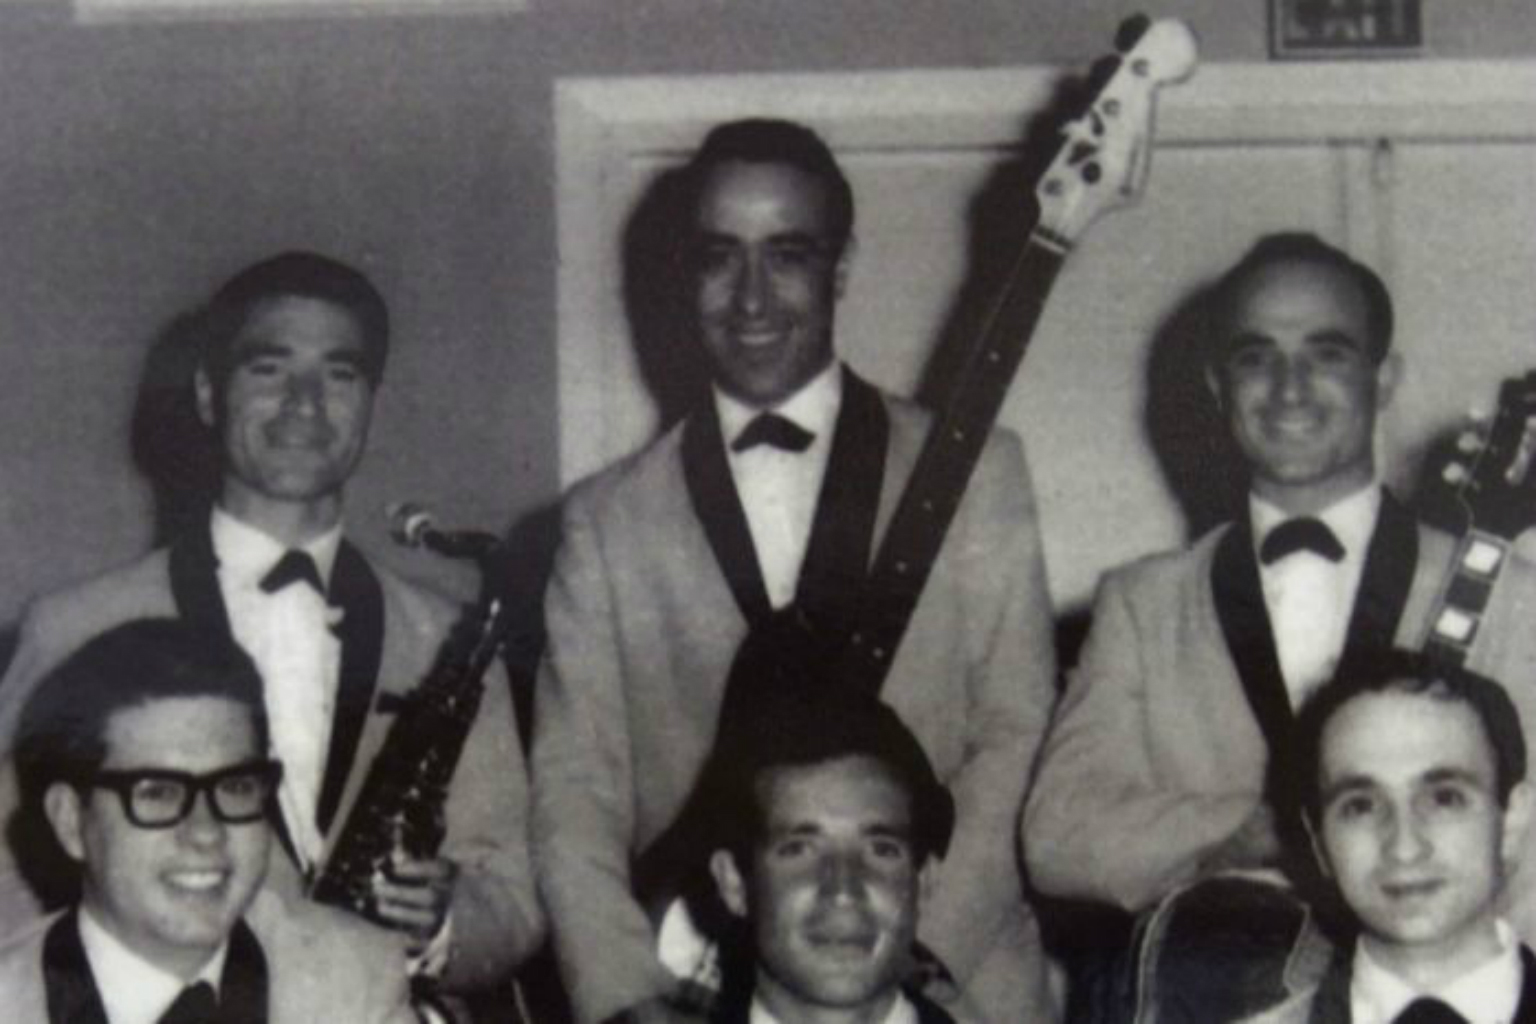 The Continentals in their heyday